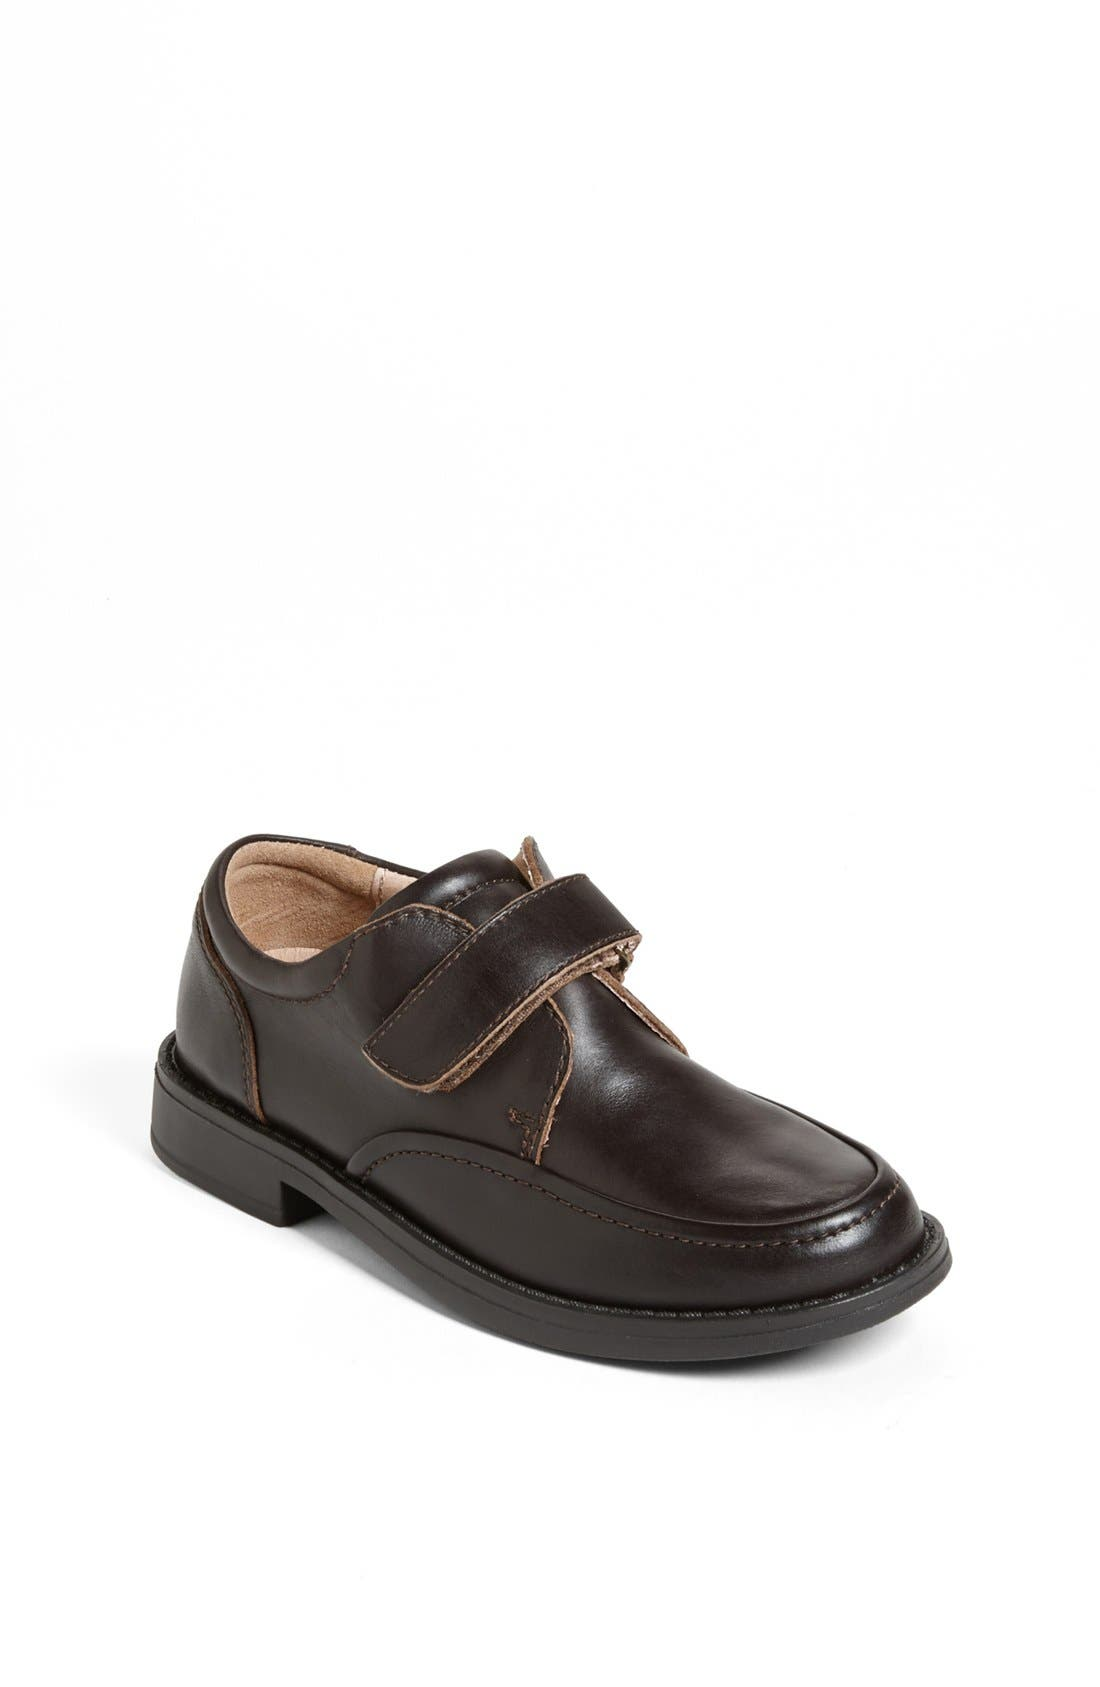 Alternate Image 1 Selected - Cole Haan 'Air Ace' Loafer (Toddler, Little Kid & Big Kid)